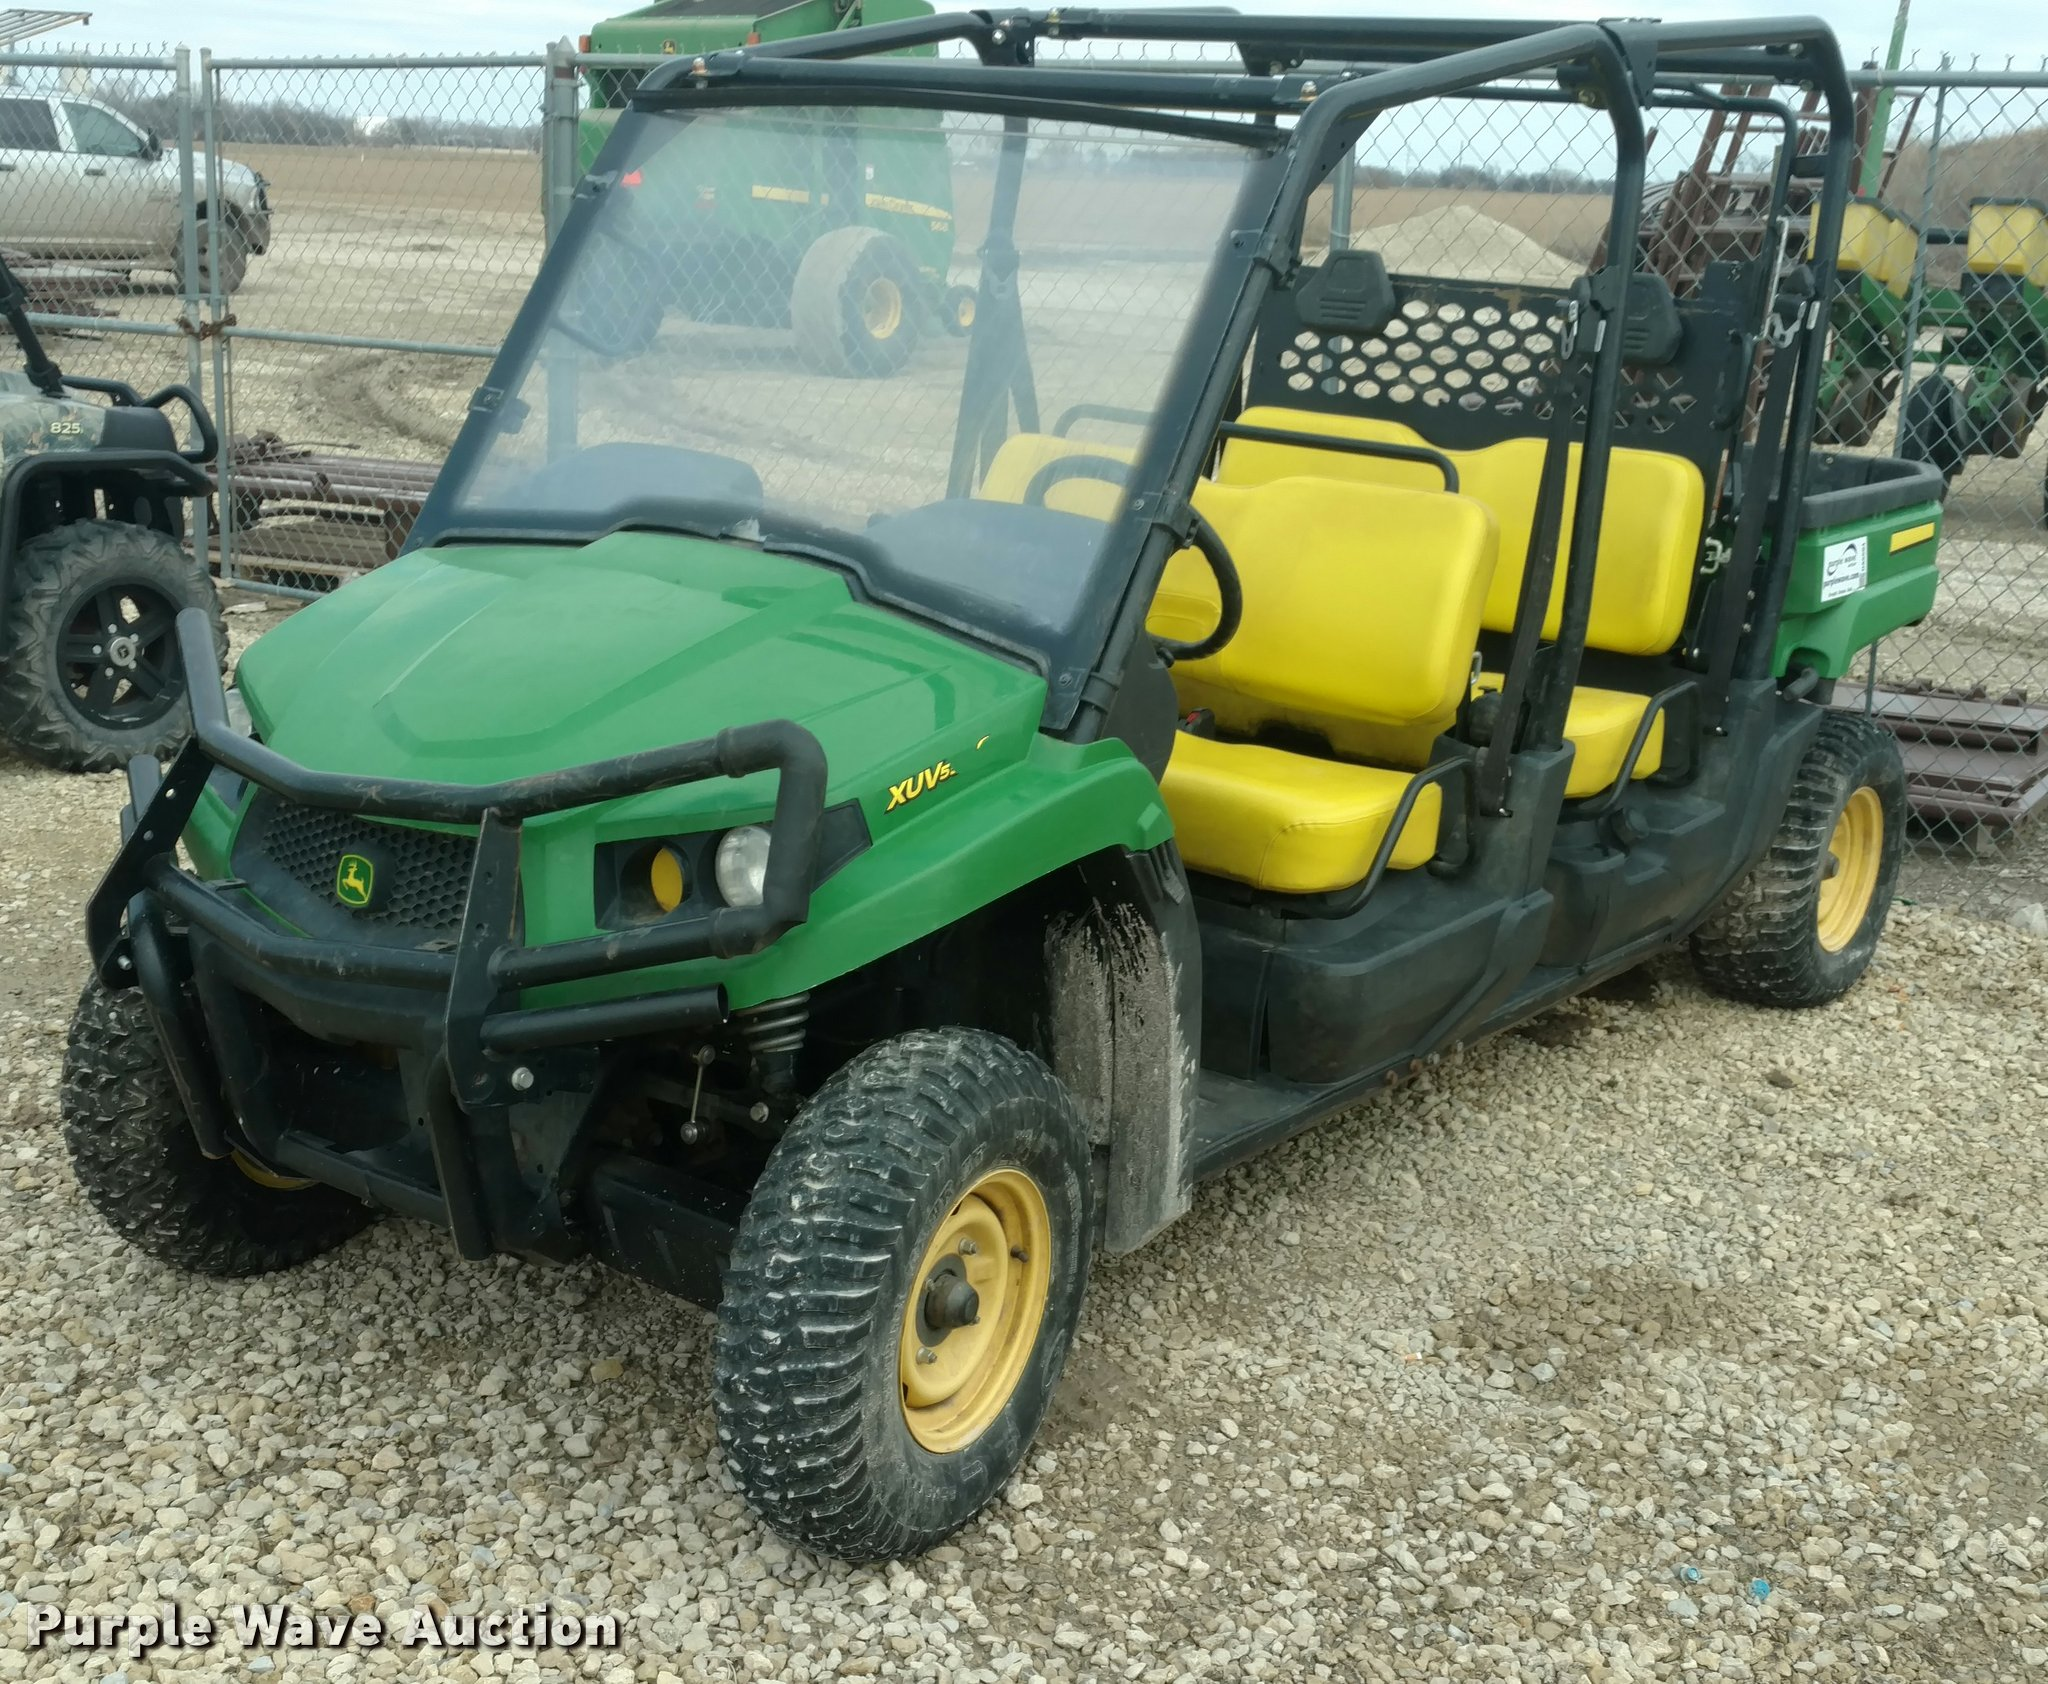 2012 John Deere Gator 550 S4 utility vehicle Item DA5504